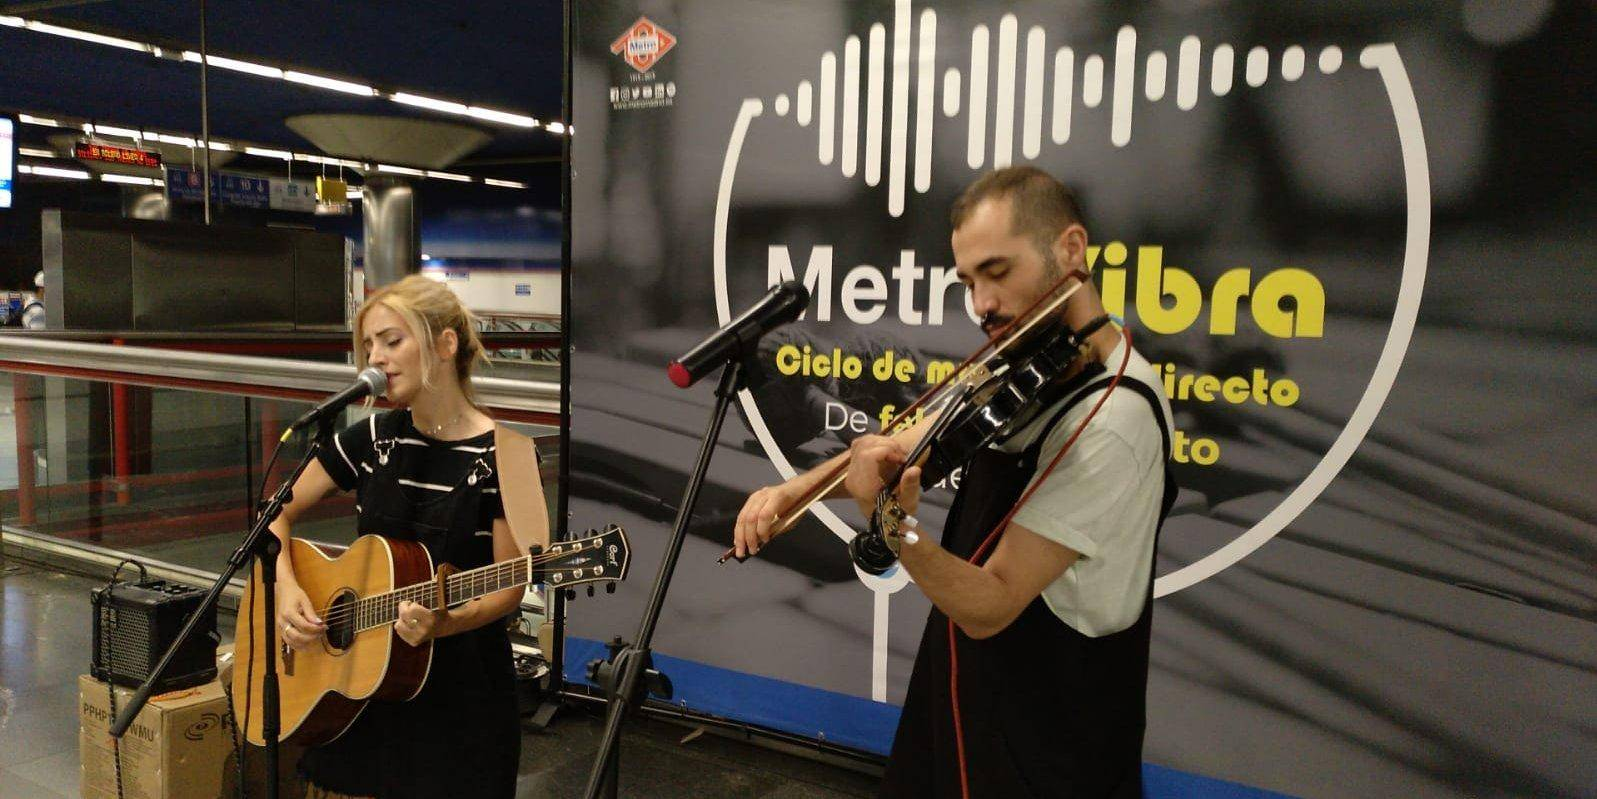 Concert in Nuevos Ministerios station